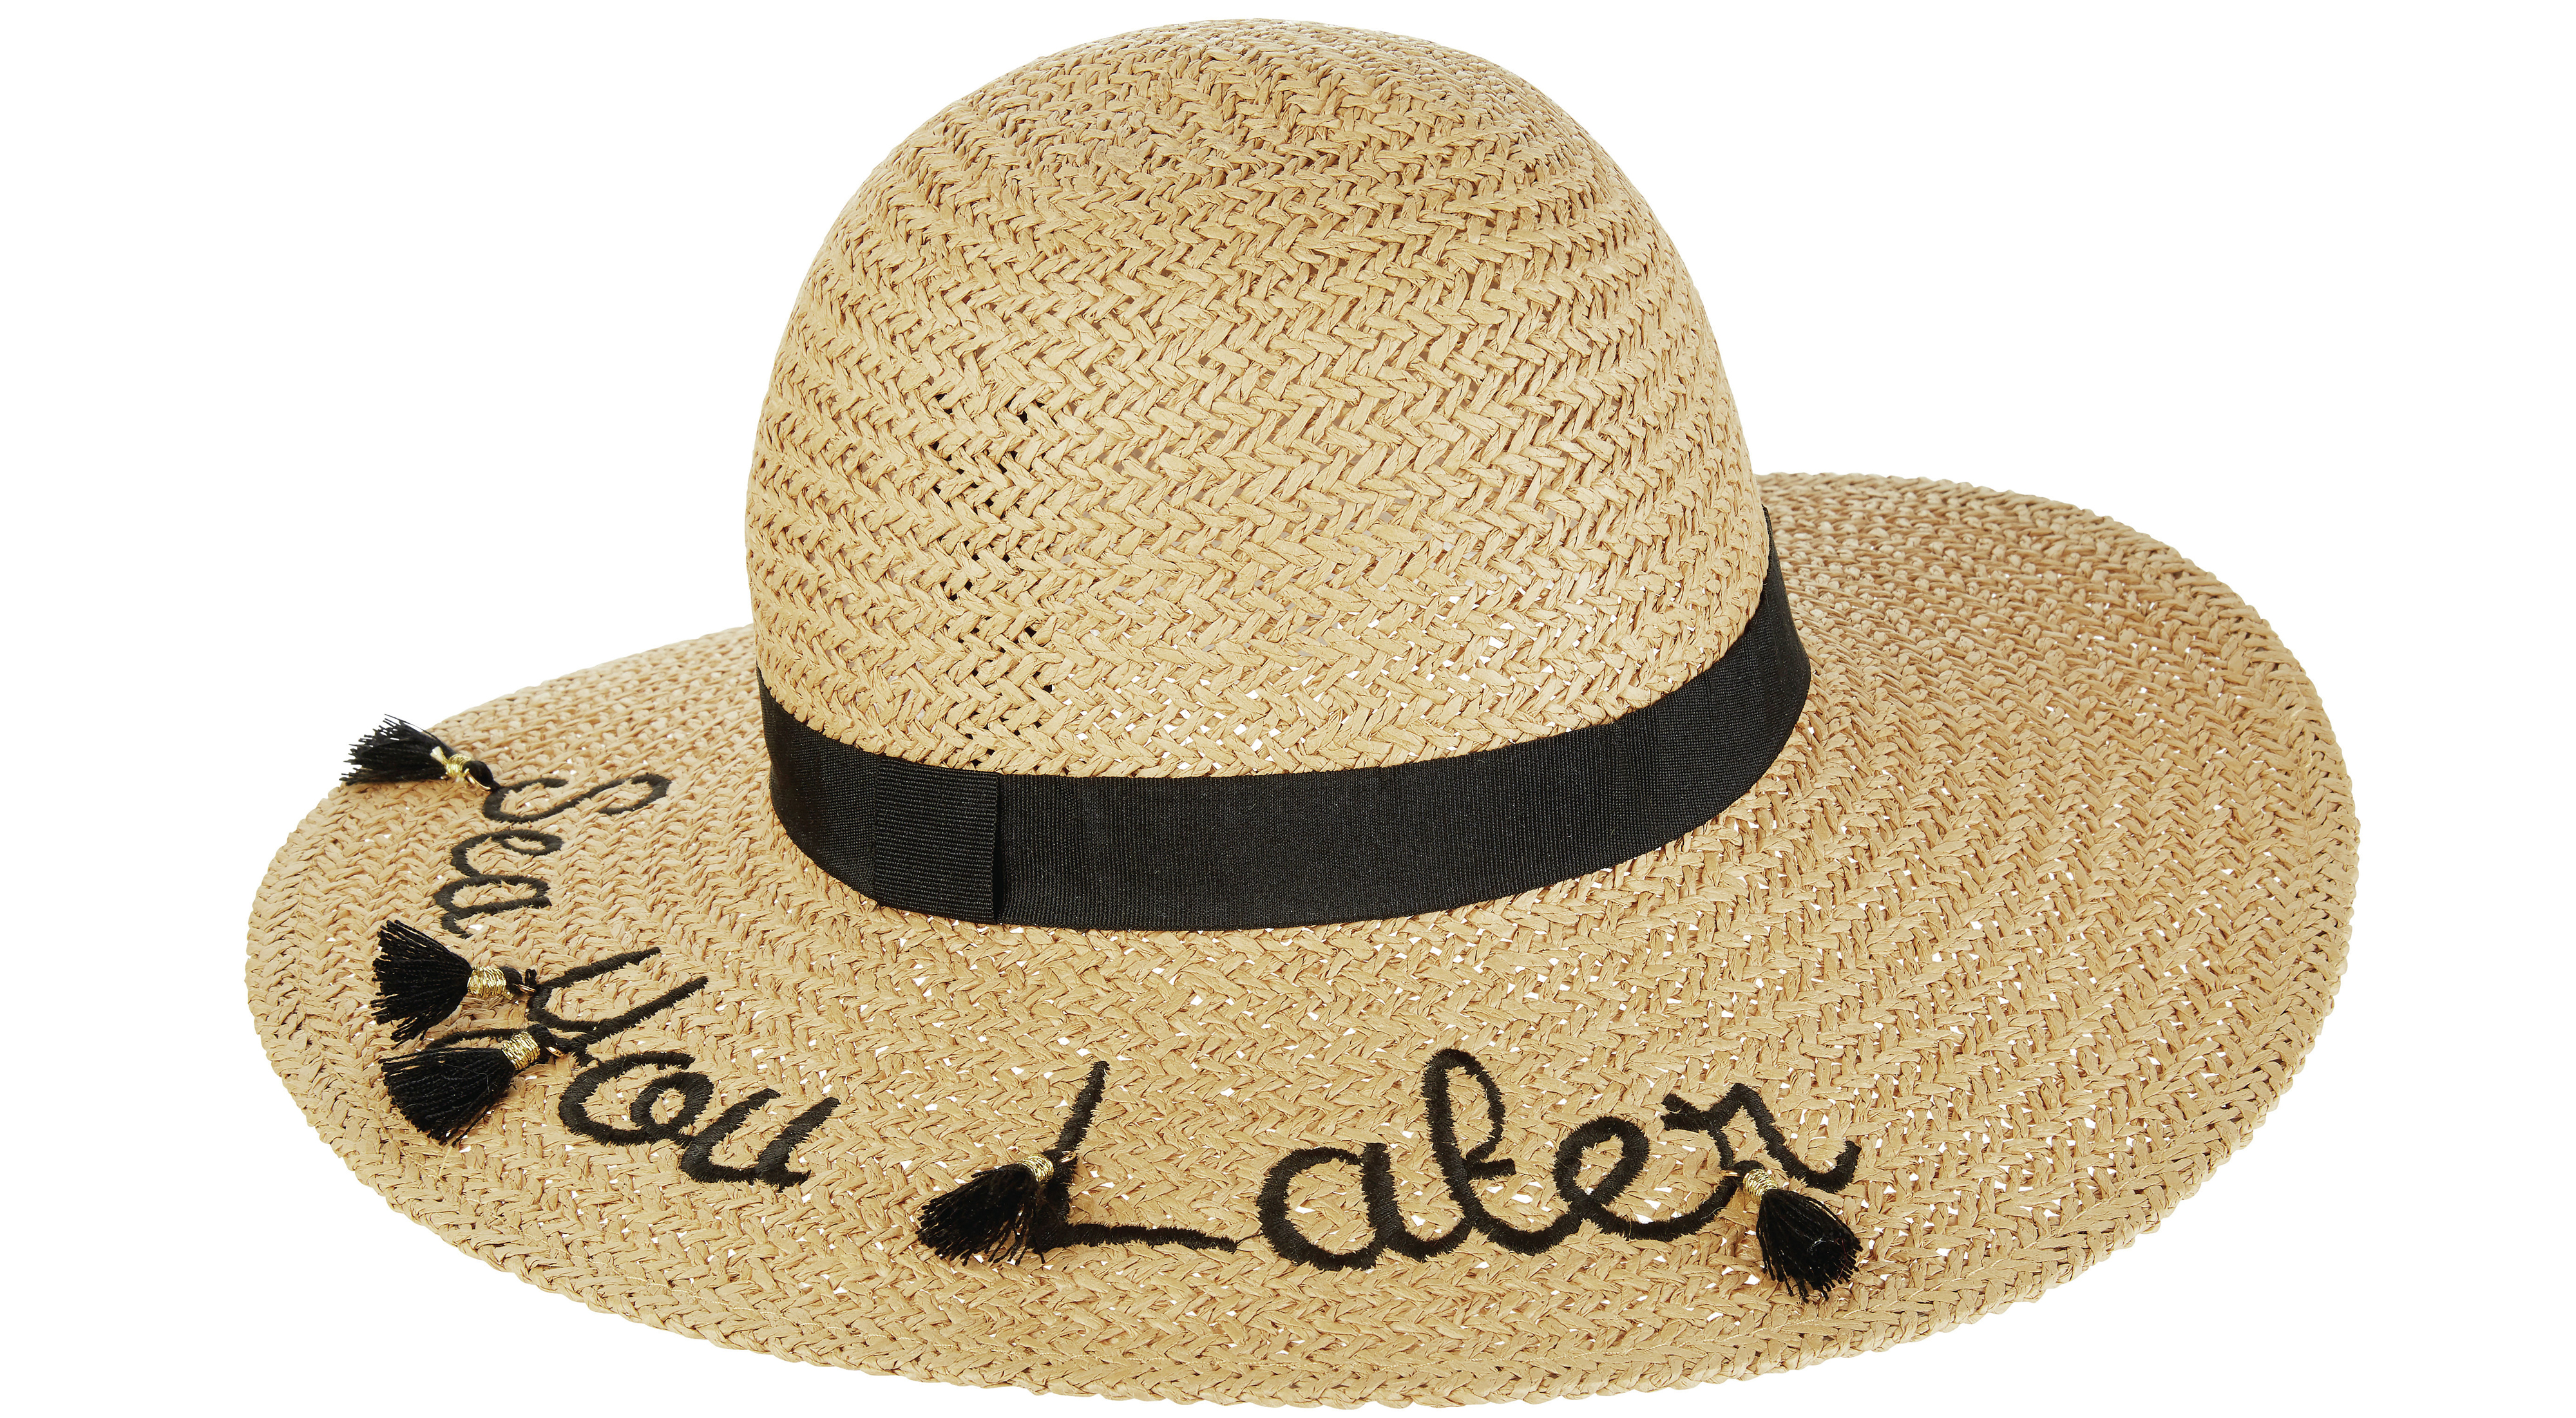 2737782e1 6 slogan sun hats to steal the spotlight in this summer - Beauty ...